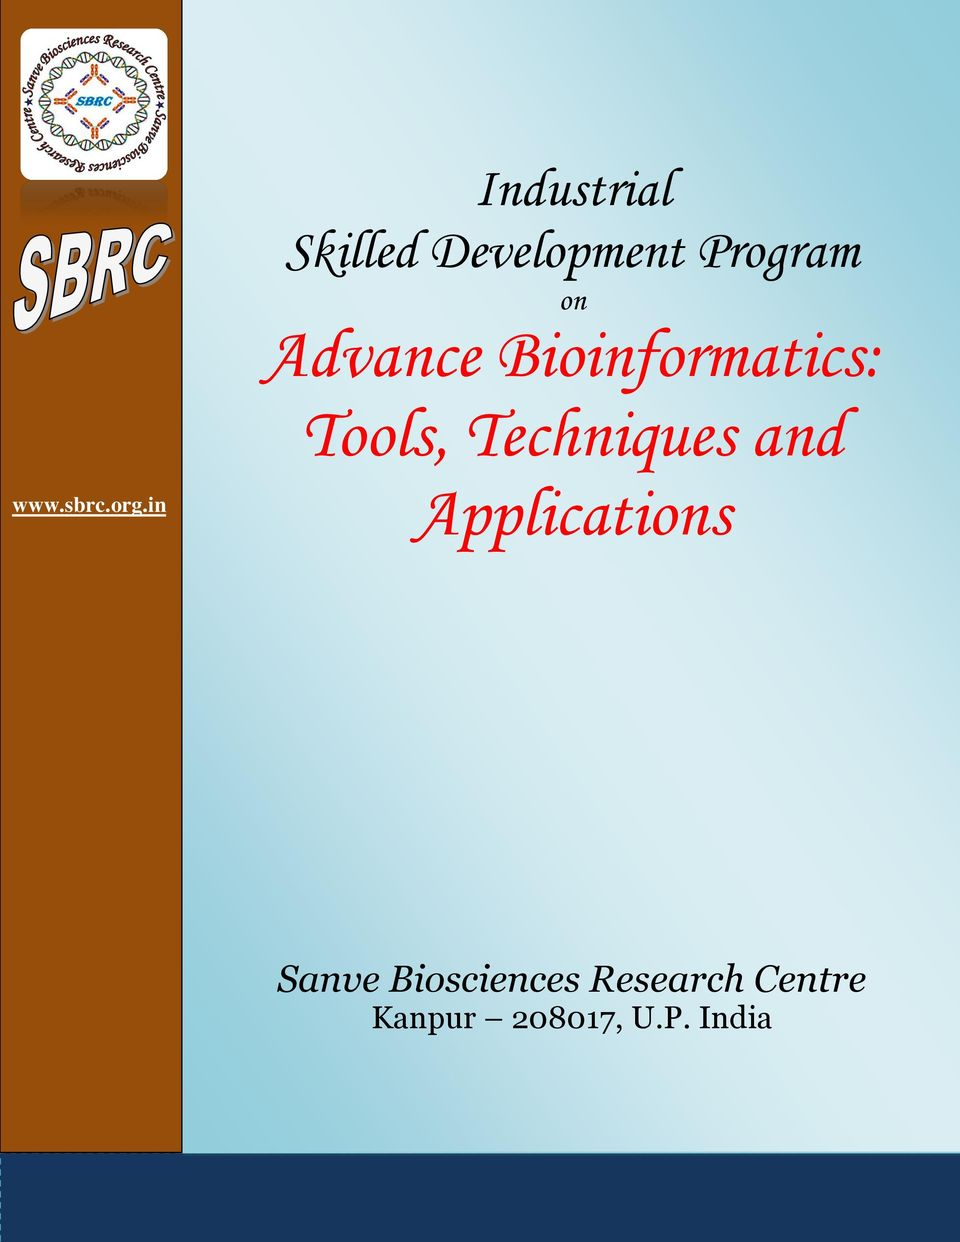 Advance Bioinformatics: Tools, Techniques and